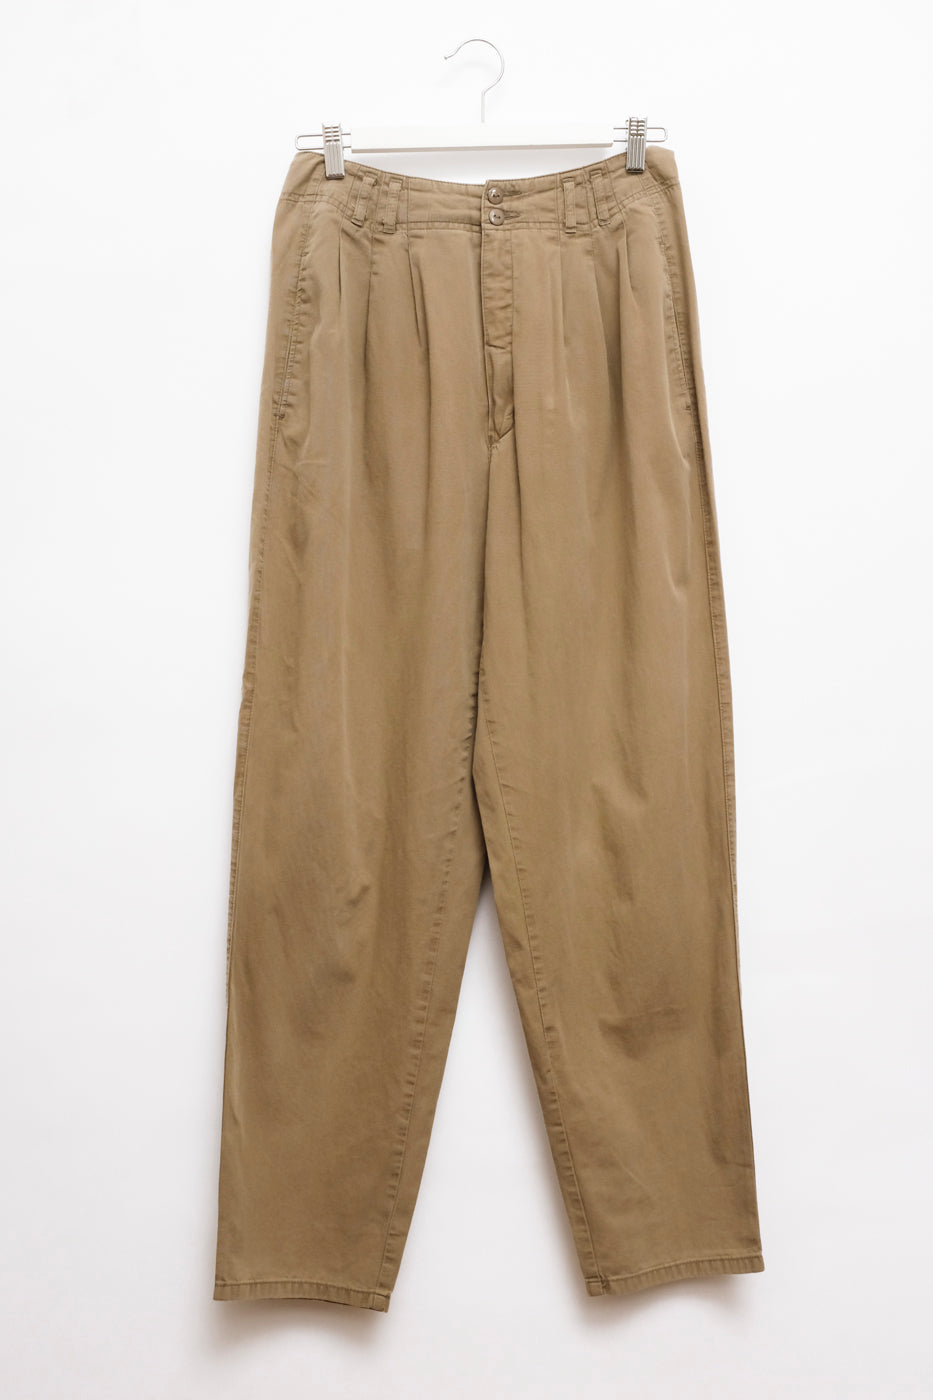 0109_HIGH WAIST SOFT COTTON PANTS